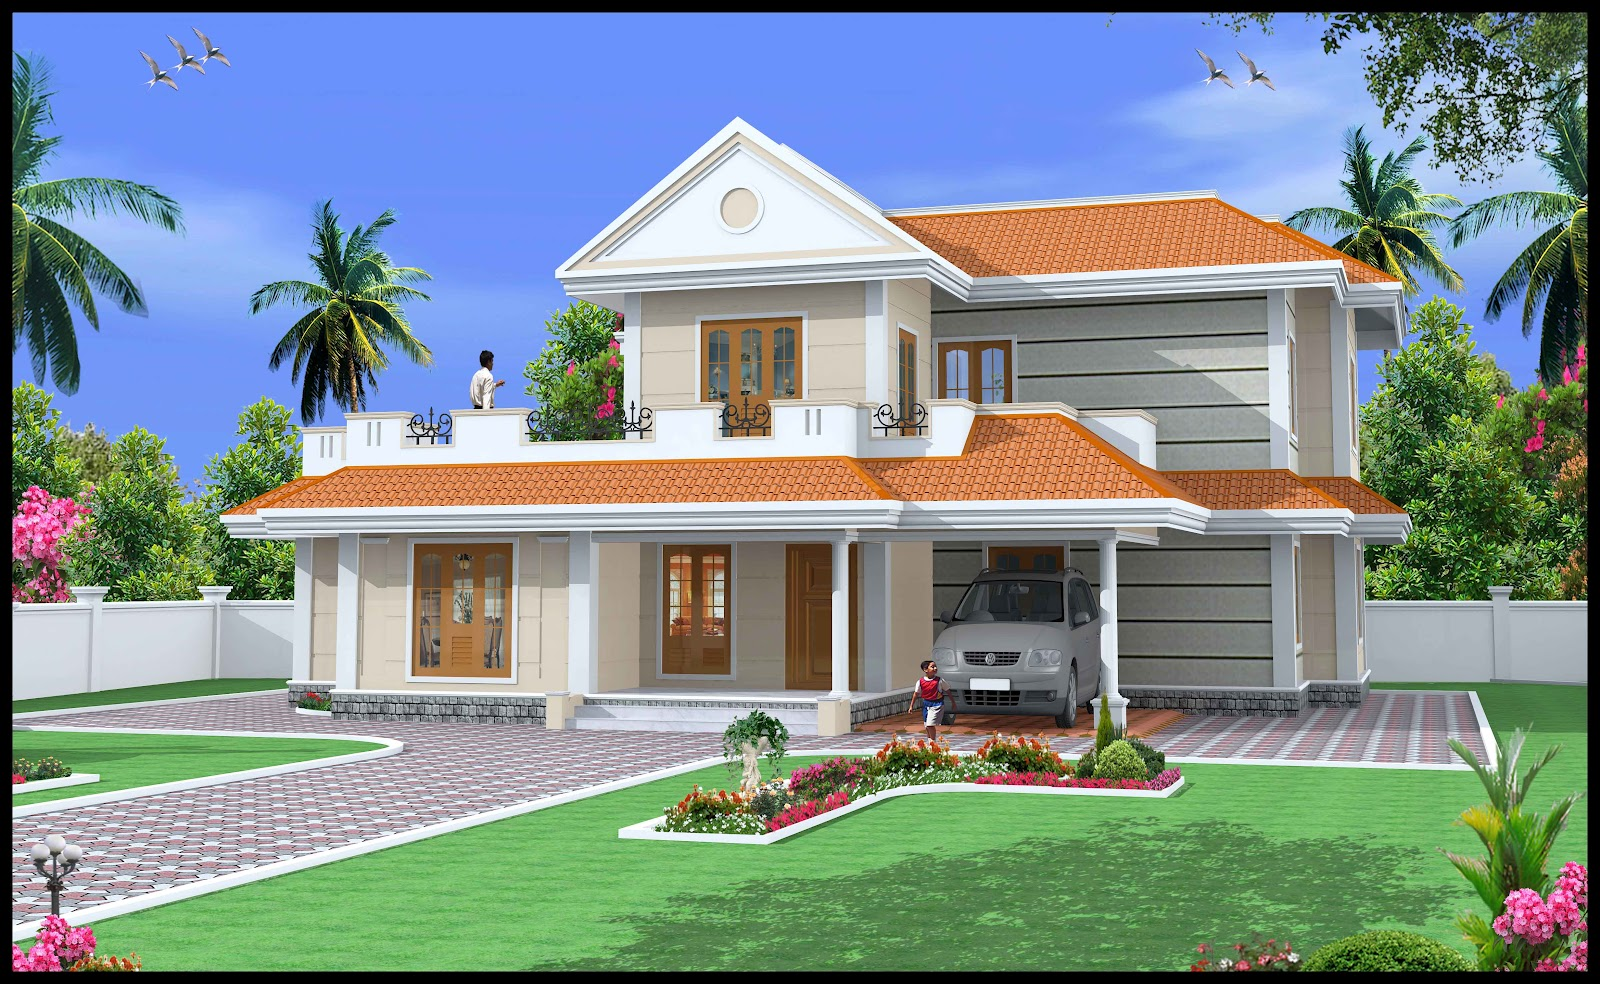 Simple duplex house design indian duplex house designs for Indian simple house design